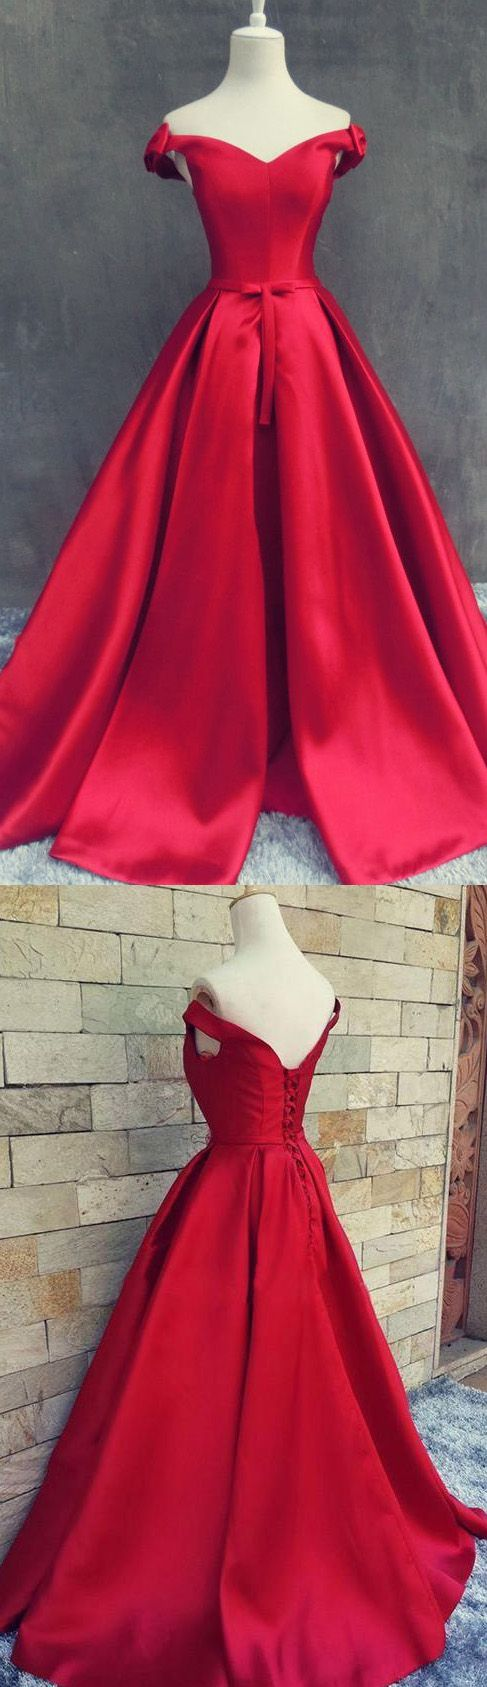 Red Prom Dresses, Cheap Prom Dresses, Short Prom Dresses, Prom Dresses Cheap, Long Sleeve Prom Dresses, Short Red Prom Dresses, Red Long Sleeve Prom dresses, Short Sleeve Prom Dresses, A Line Prom Dresses, Long Sleeve Dresses, A Line dresses, Princess Evening Dresses, Red Evening Dresses, Long Prom Dresses With Pleated Short Sleeve Sweep Train